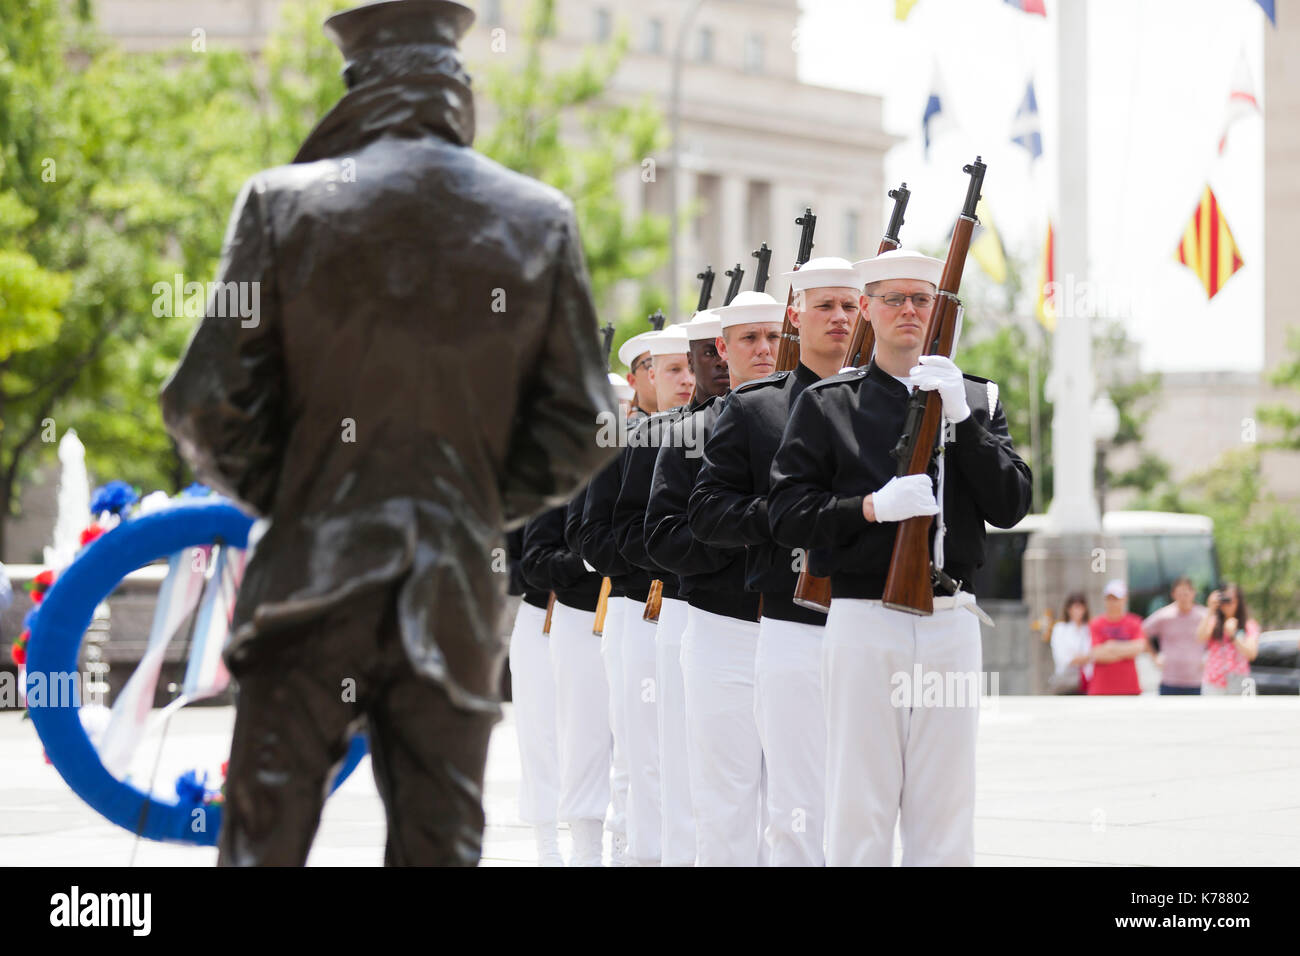 Navy ceremonial guard sailors full honors ceremony at the US Navy Memorial - Washington, DC USA - Stock Image